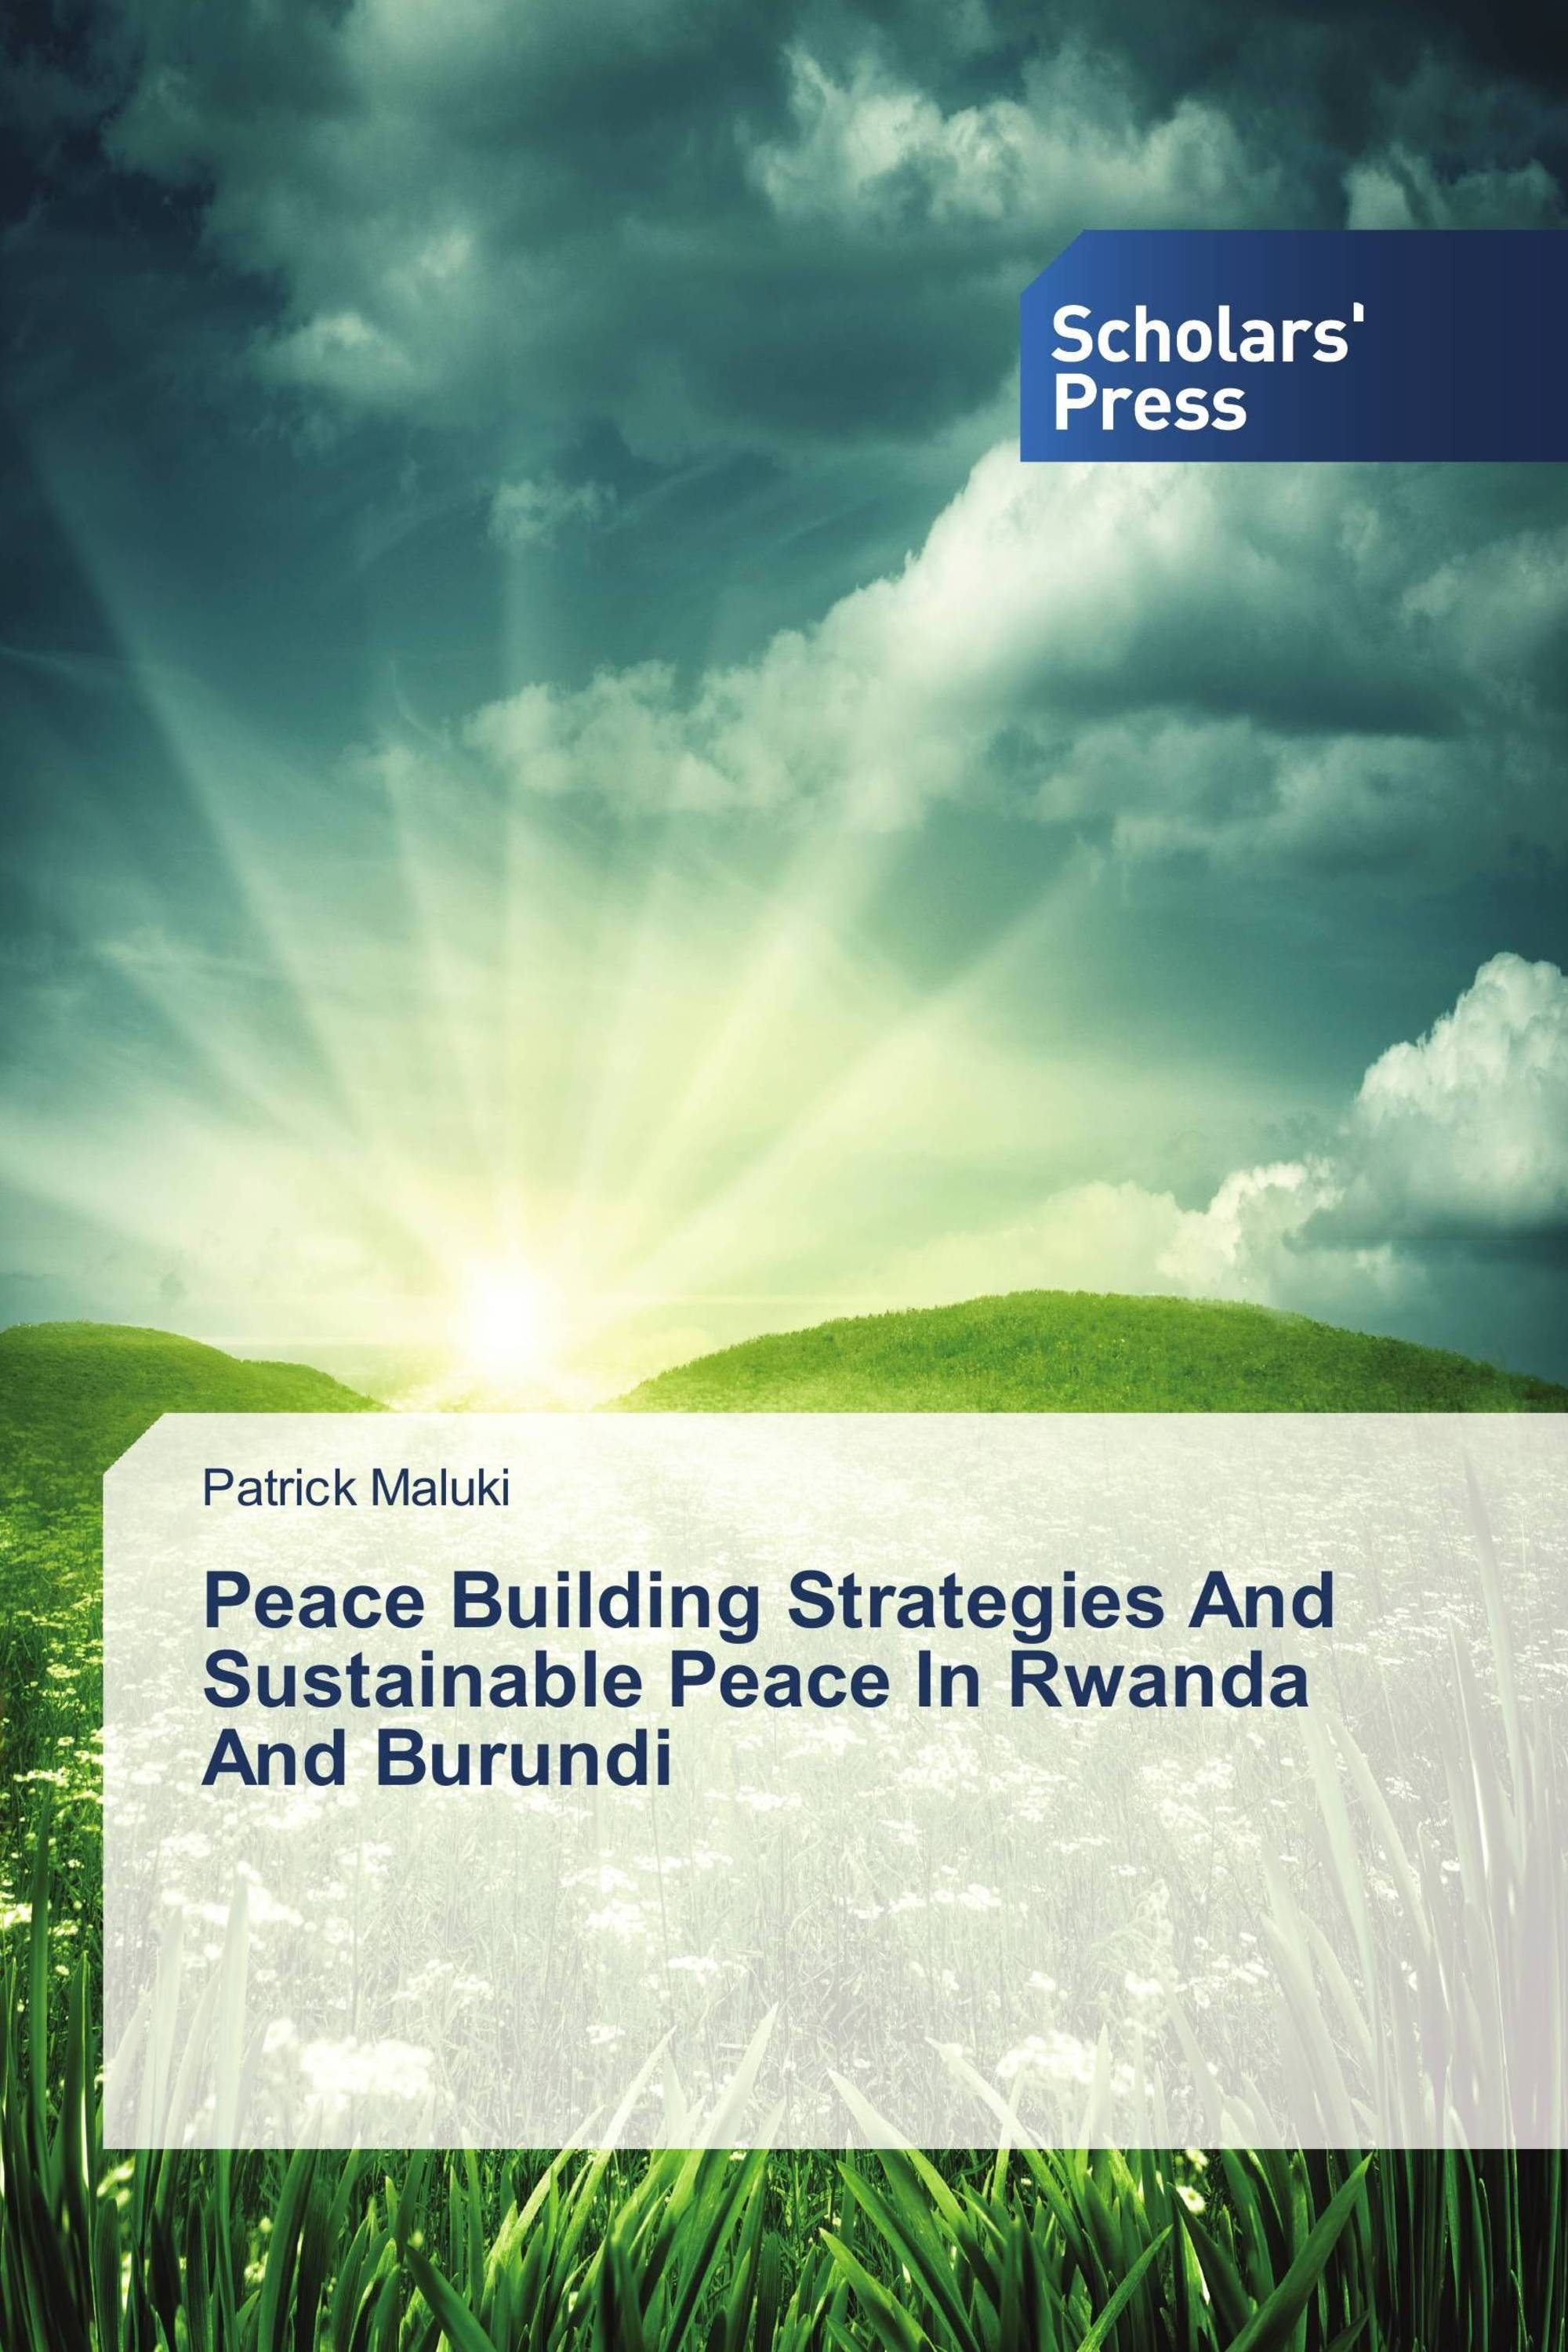 Peace Building Strategies And Sustainable Peace In Rwanda And Burundi